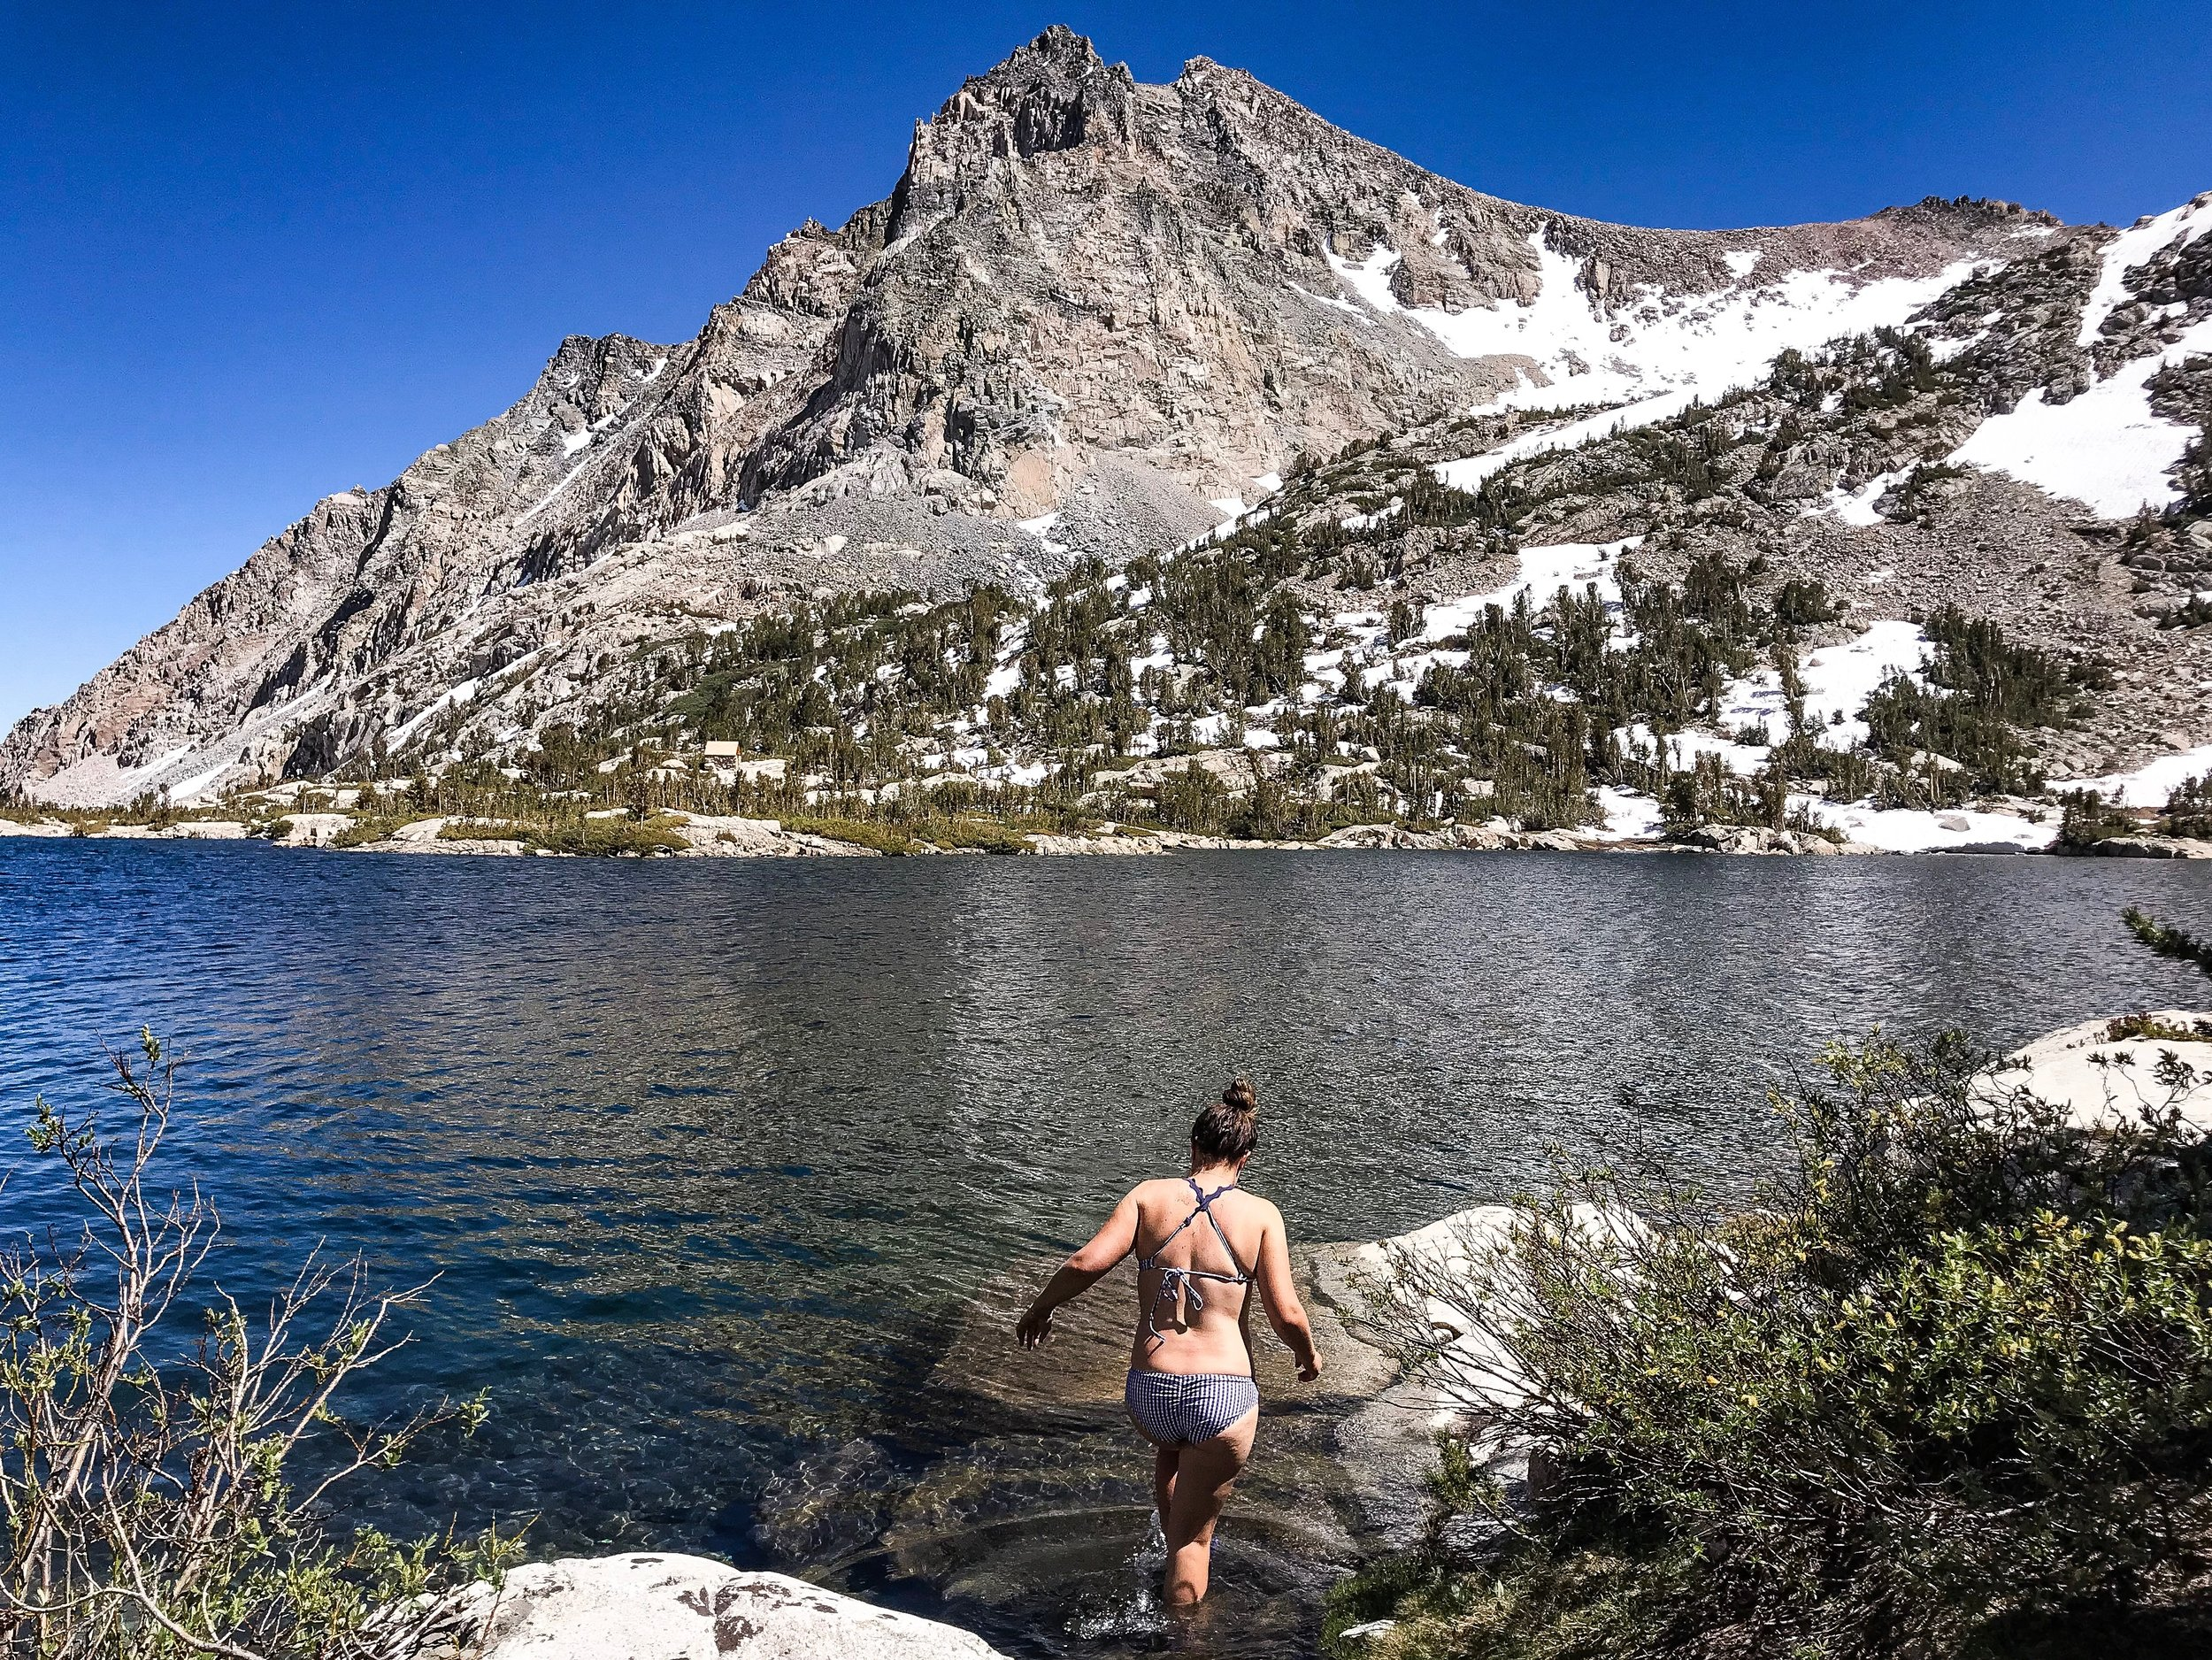 I am the first person to jump in an alpine lake…